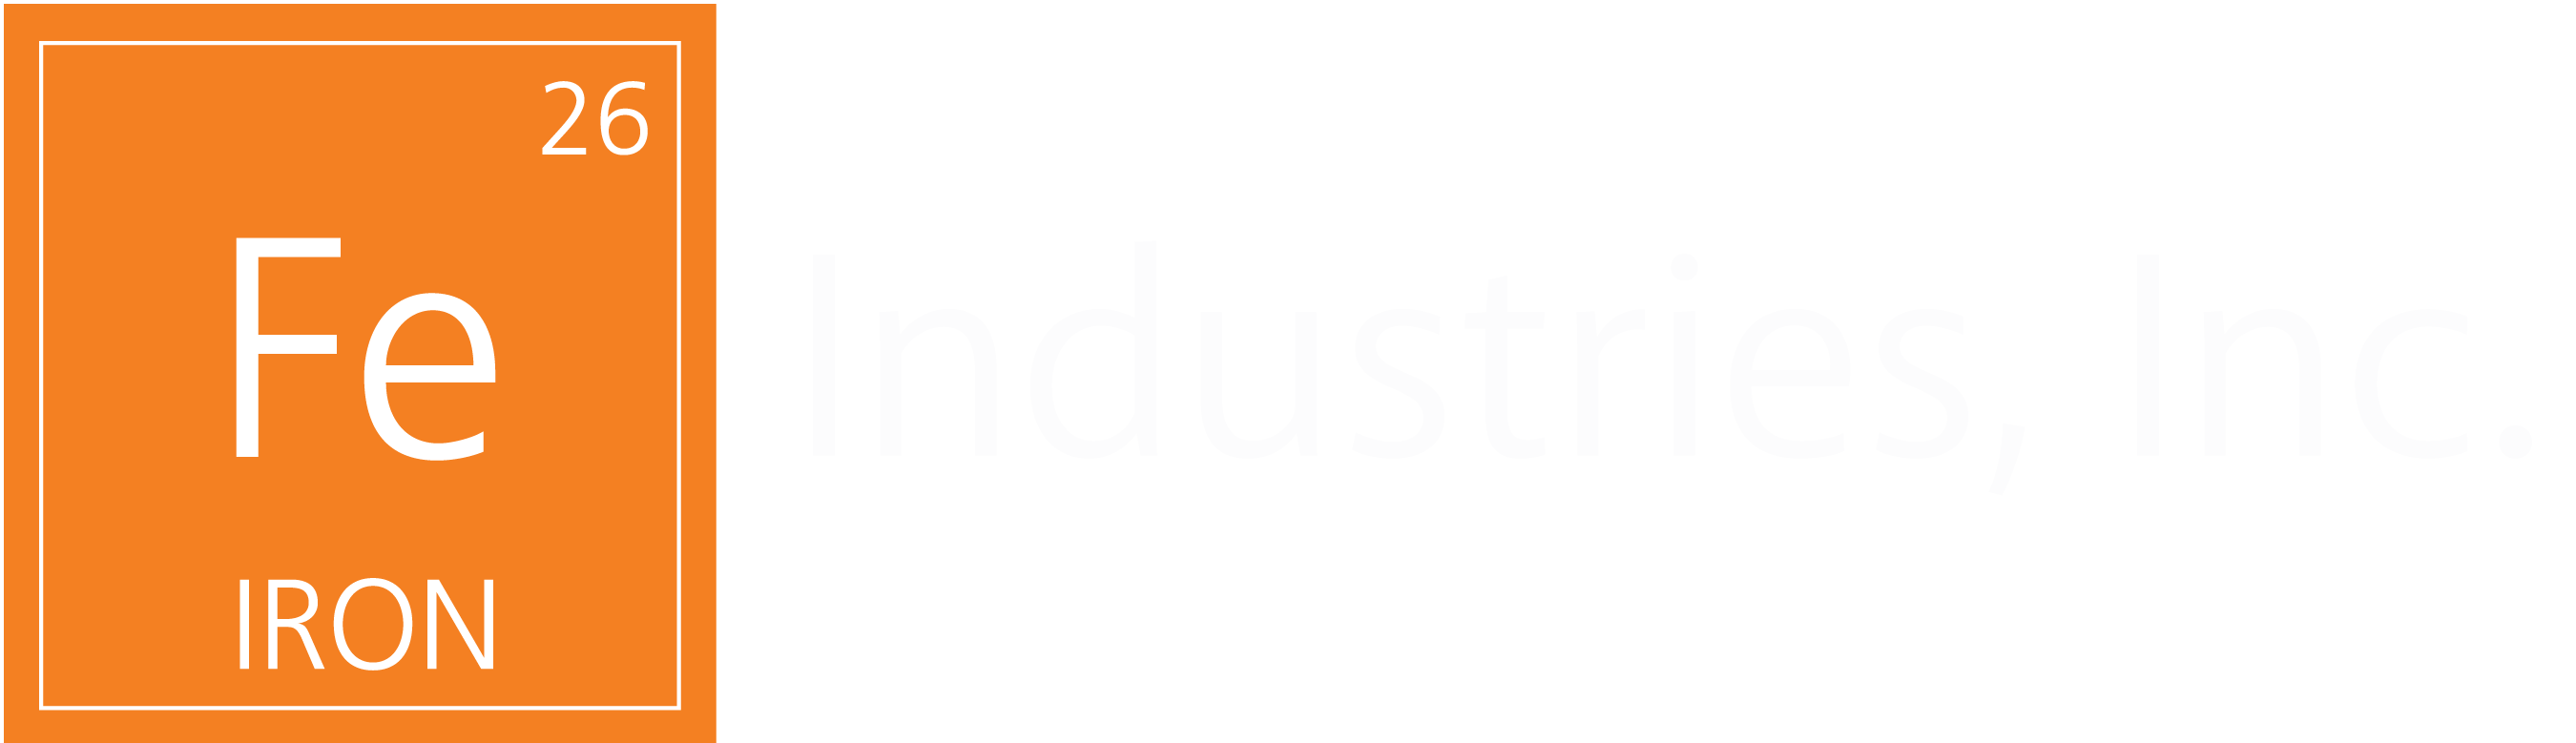 FE Industries, Inc